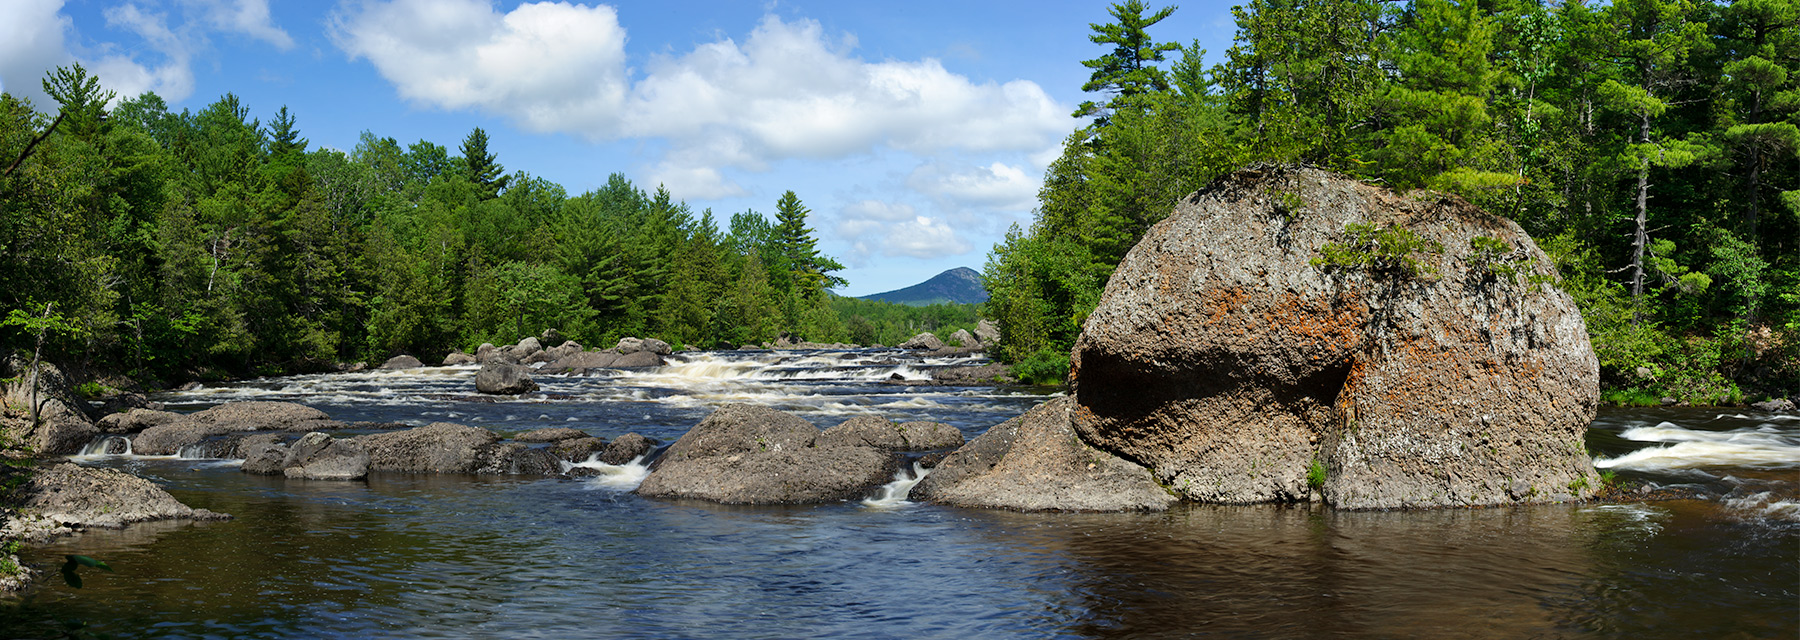 Haskell Rock Katahdin Woods and Waters National Monument